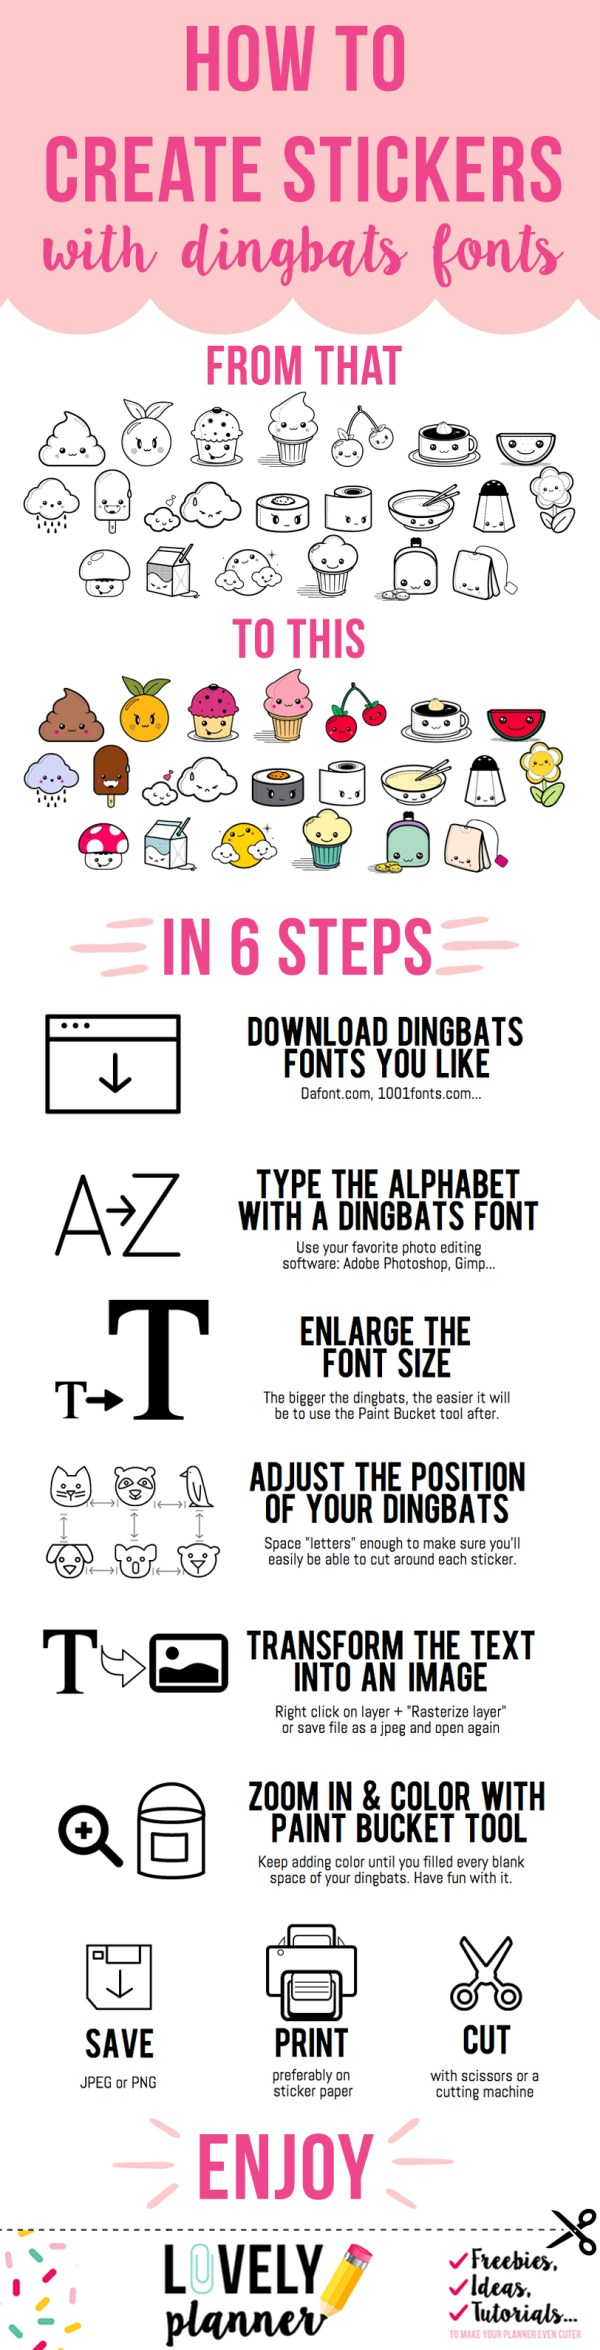 infographic how to create stickers with dingbats font - Lovely Planner